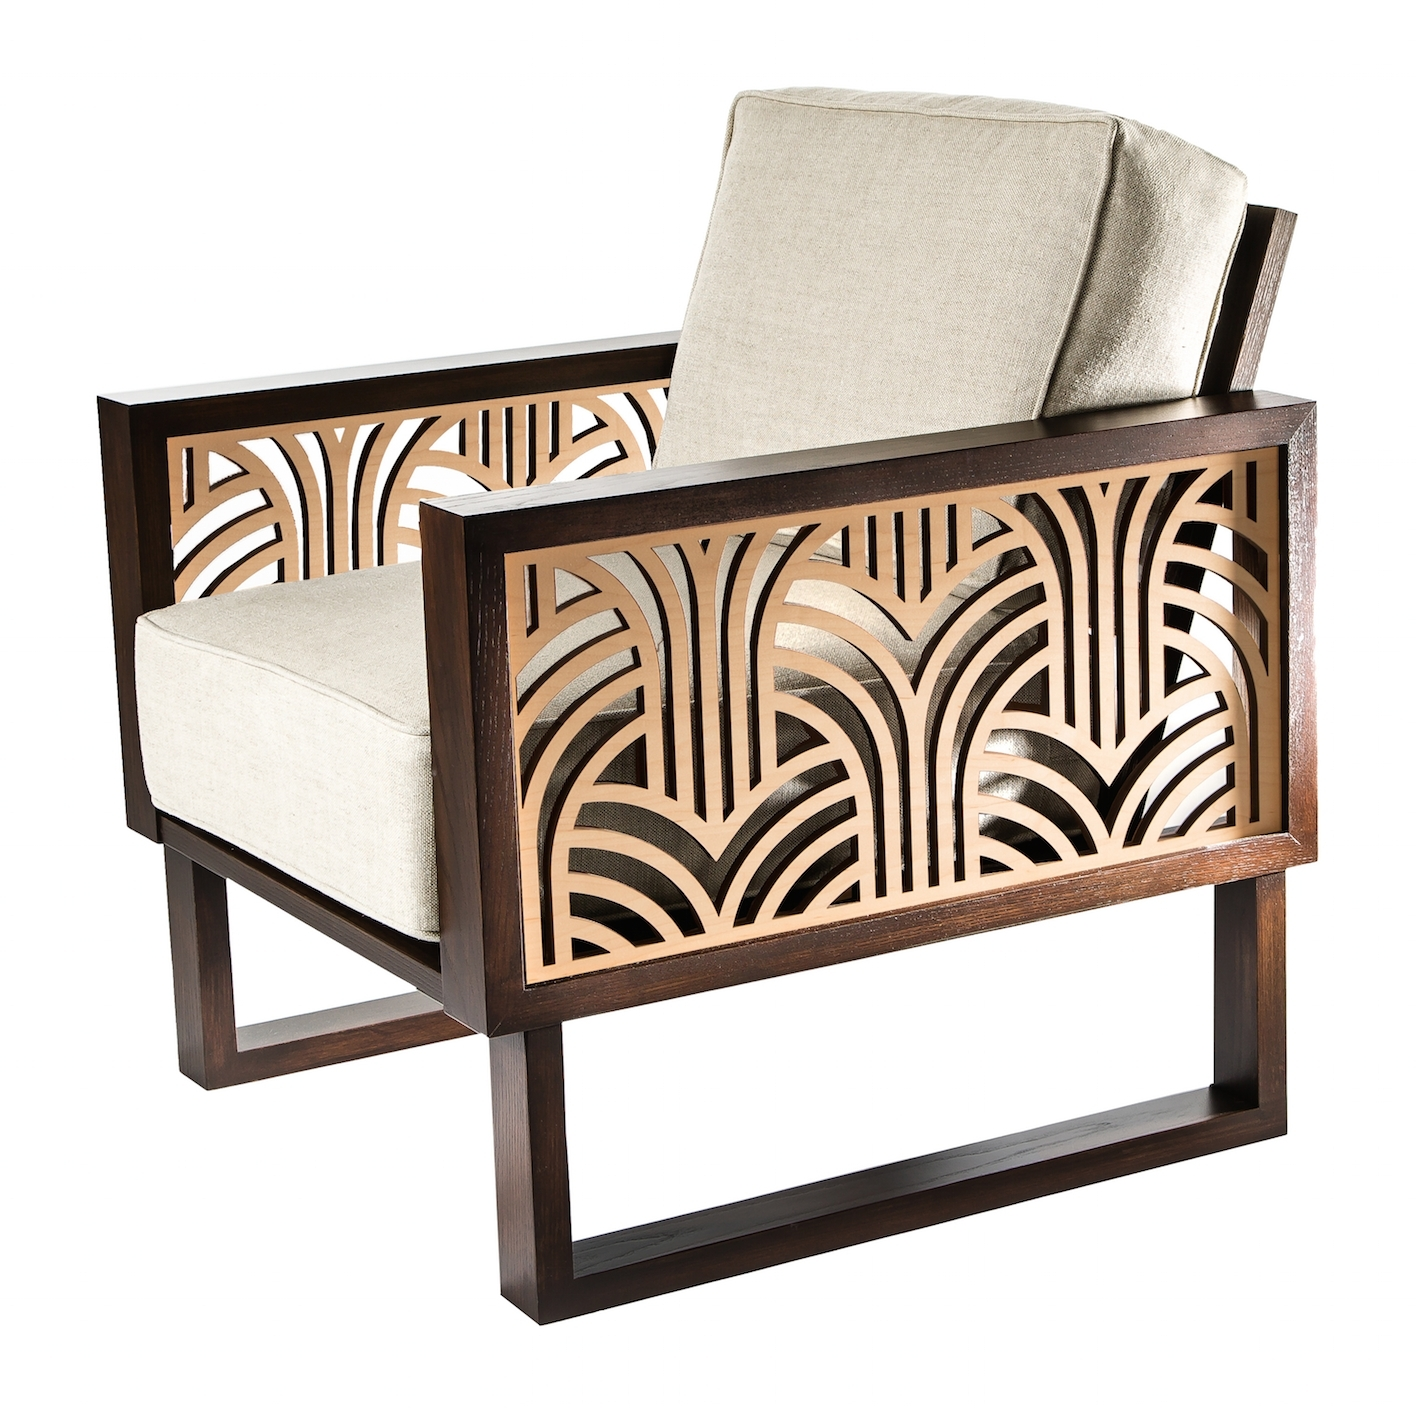 13 Art Deco Chairs – Art Deco Furniture In Most Up To Date Art Deco Sofas (Gallery 14 of 20)